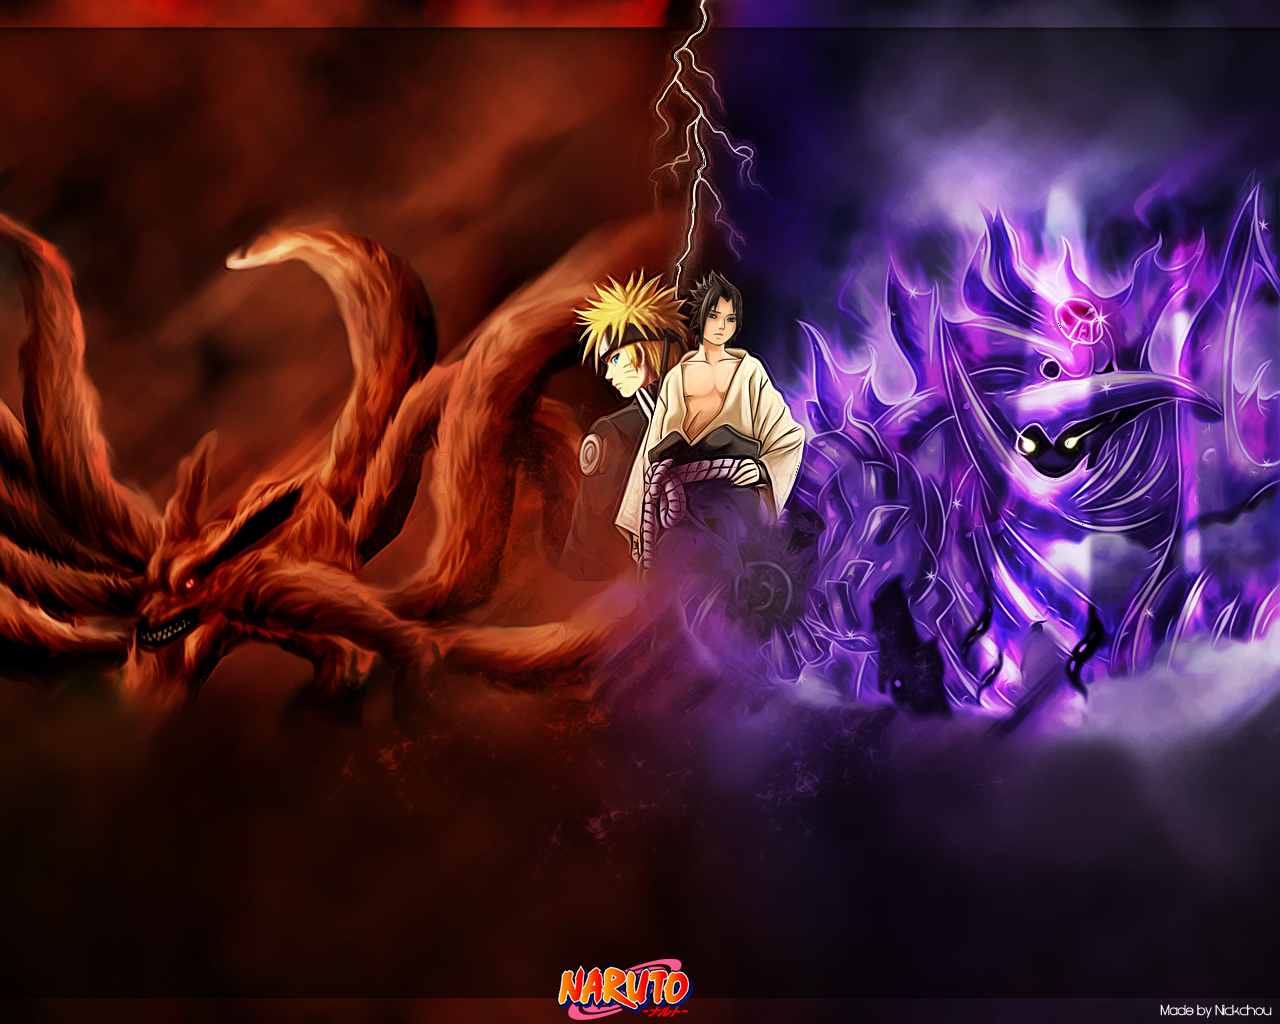 epic naruto wallpaper 1280x1024